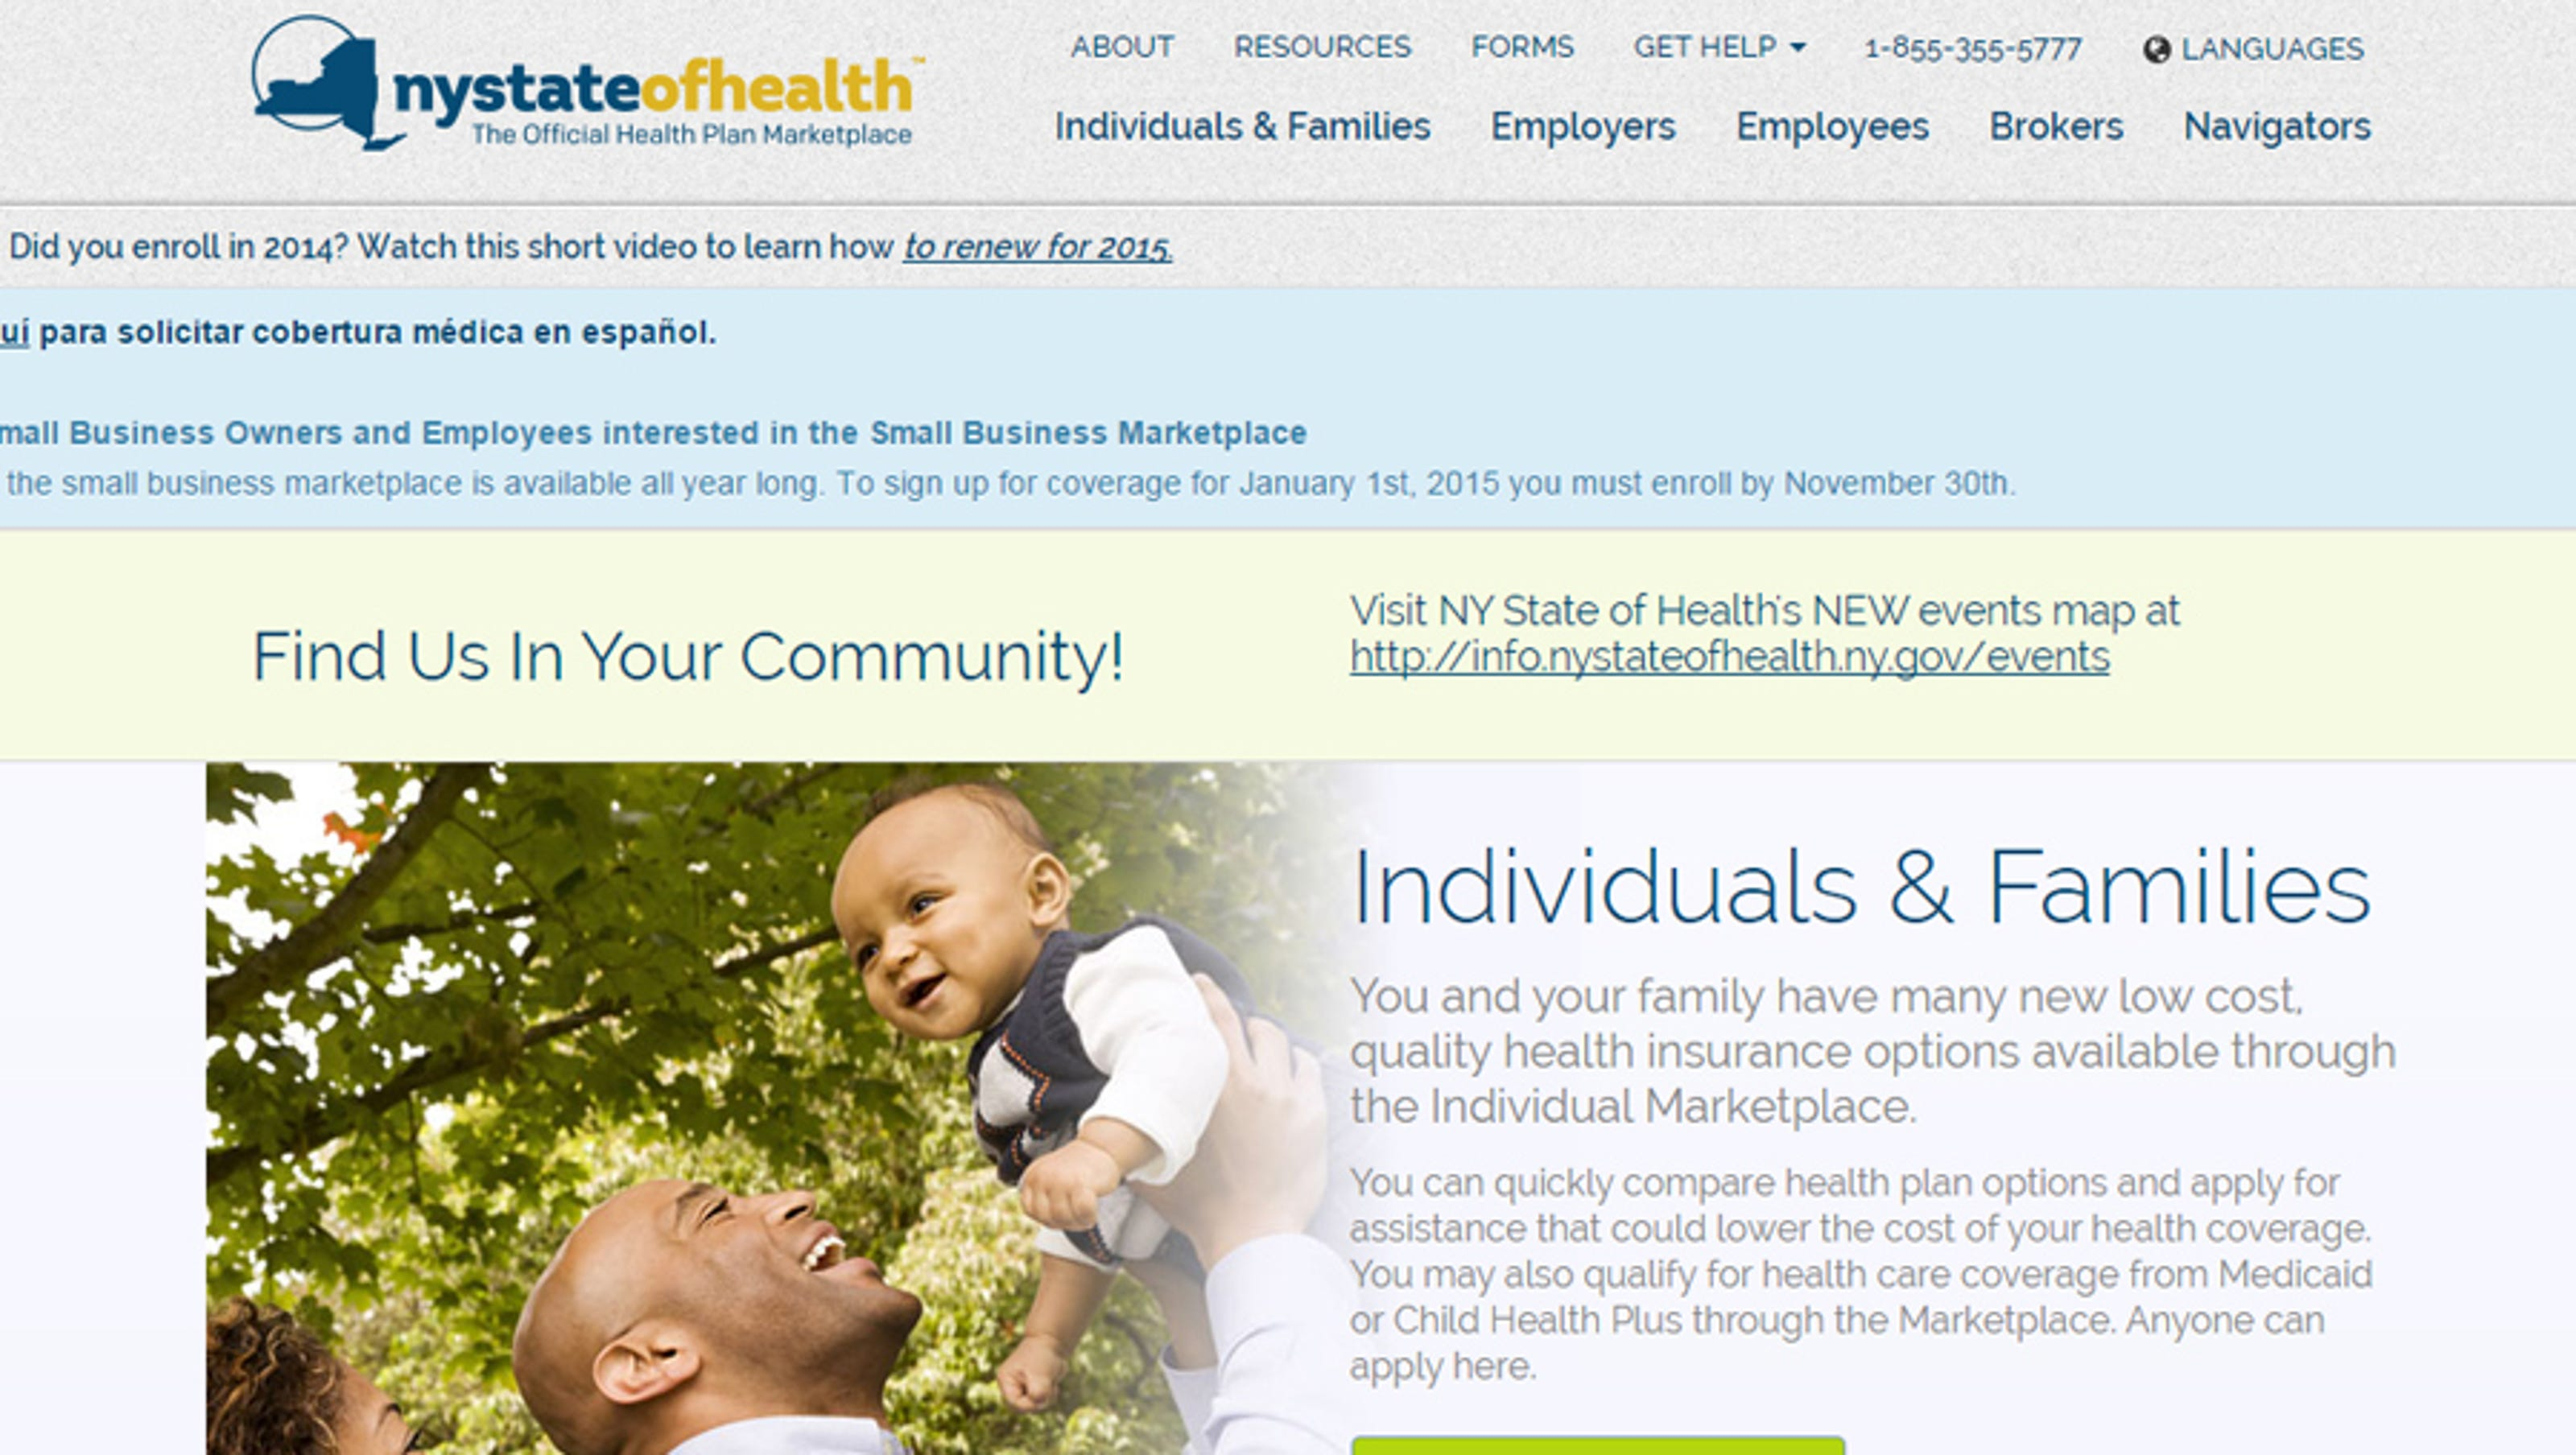 Enrollment in health exchanges increases across New York